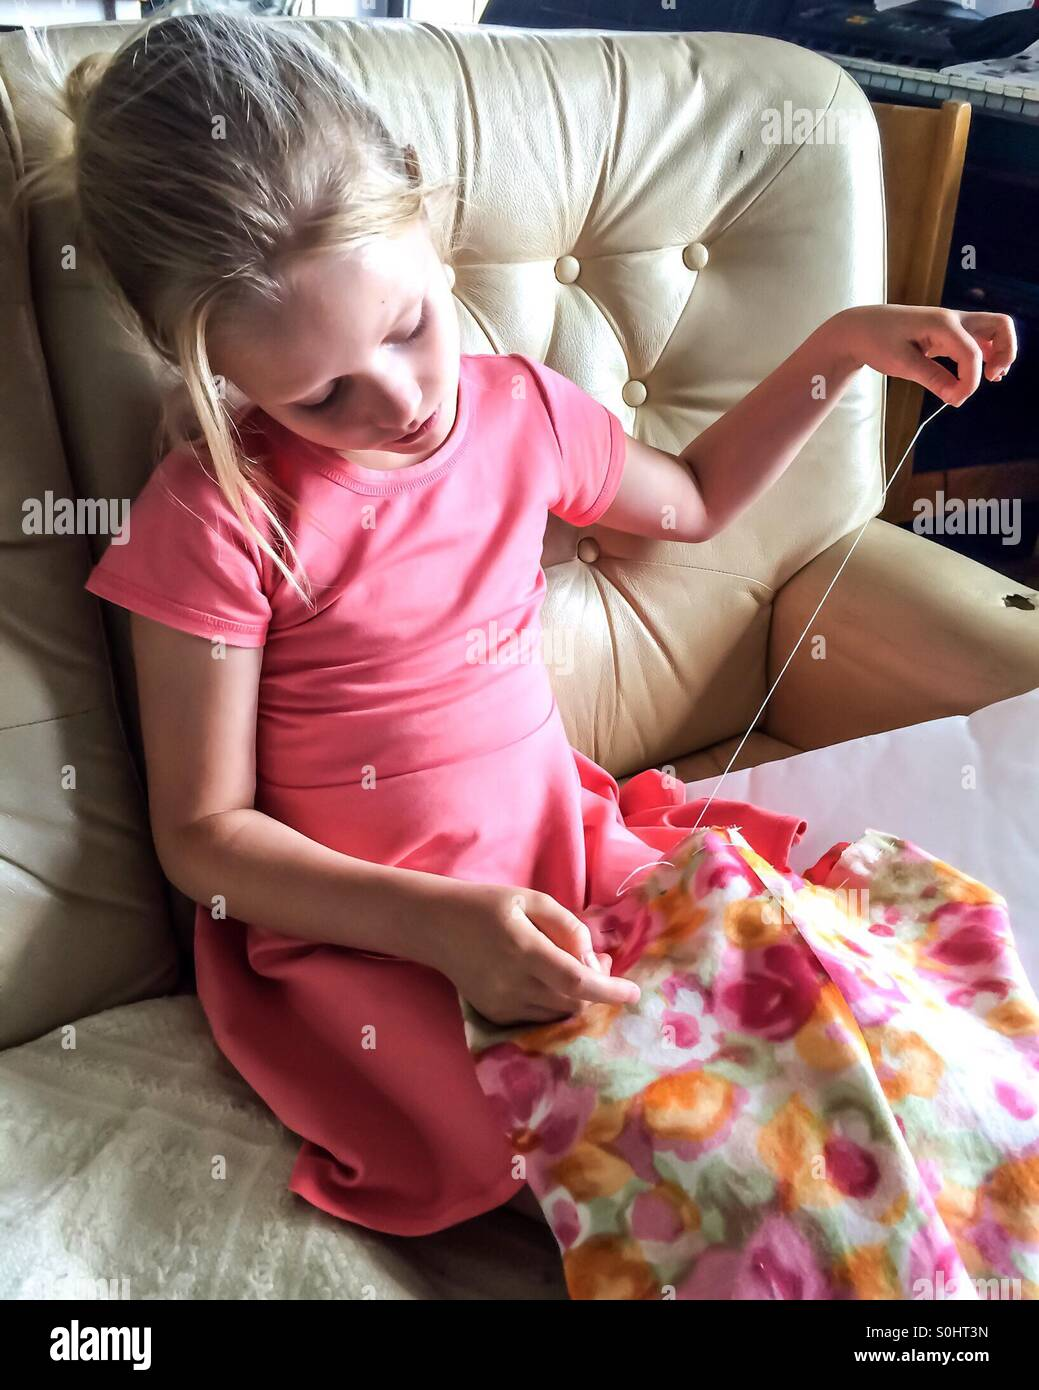 Girl sews a pillow case by hand - Stock Image